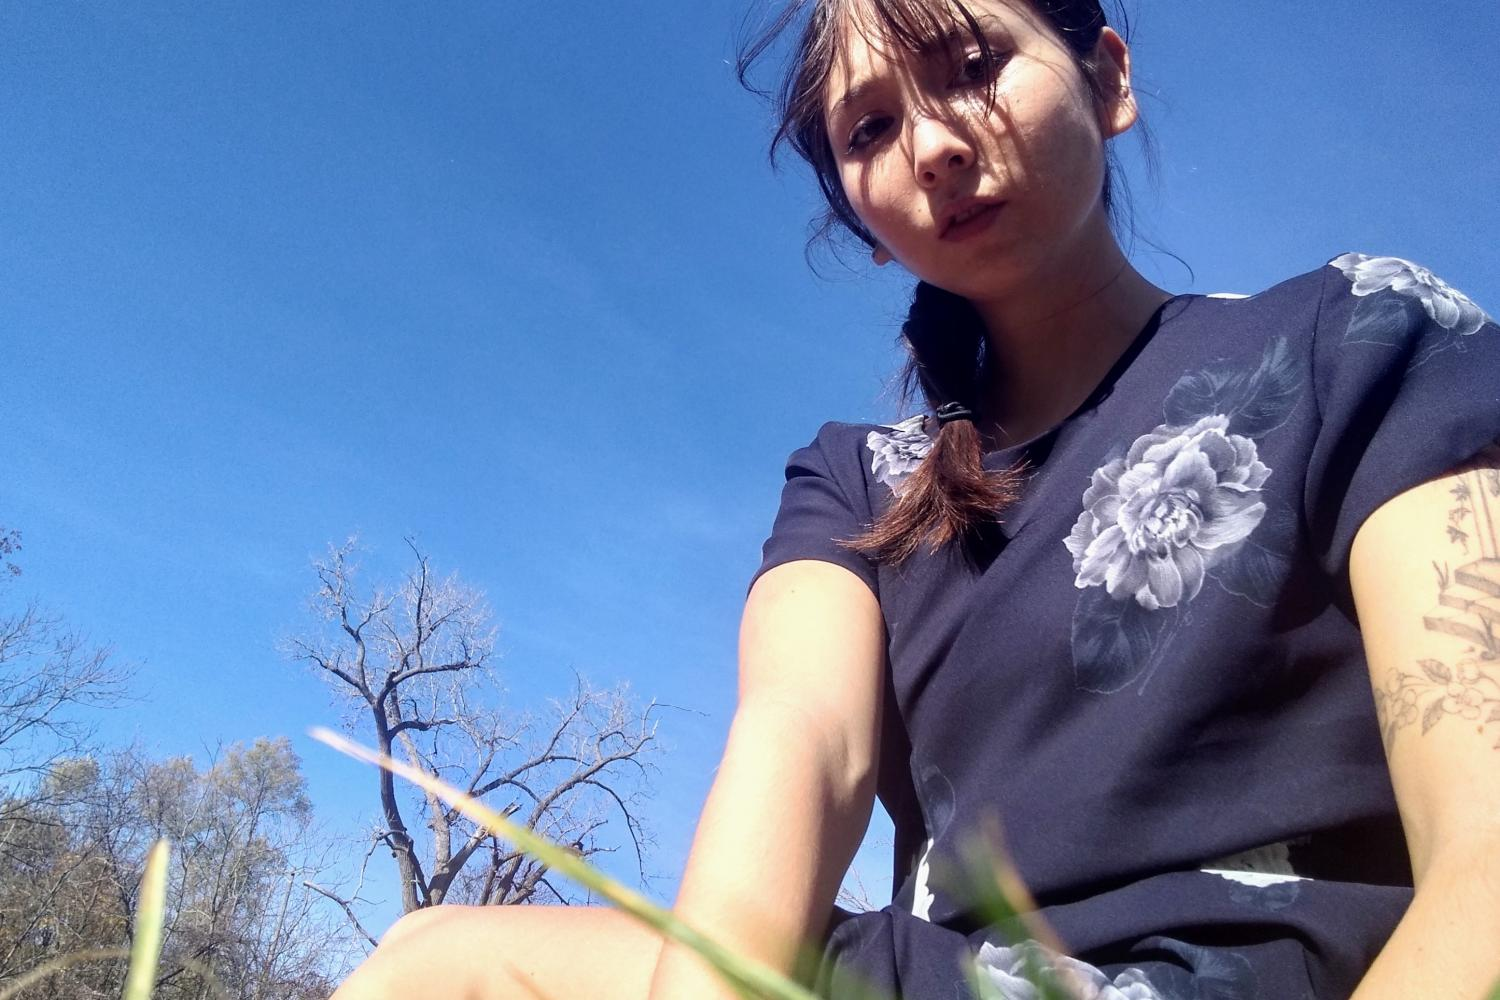 The artist Rachel Ishikawa sits in the grass outside against a clear blue sky. Her hair is a in a low braid over her shoulder, bangs falling in her face as she turns to look at the camera. She is wearing dark t-shirt dress with a floral design.